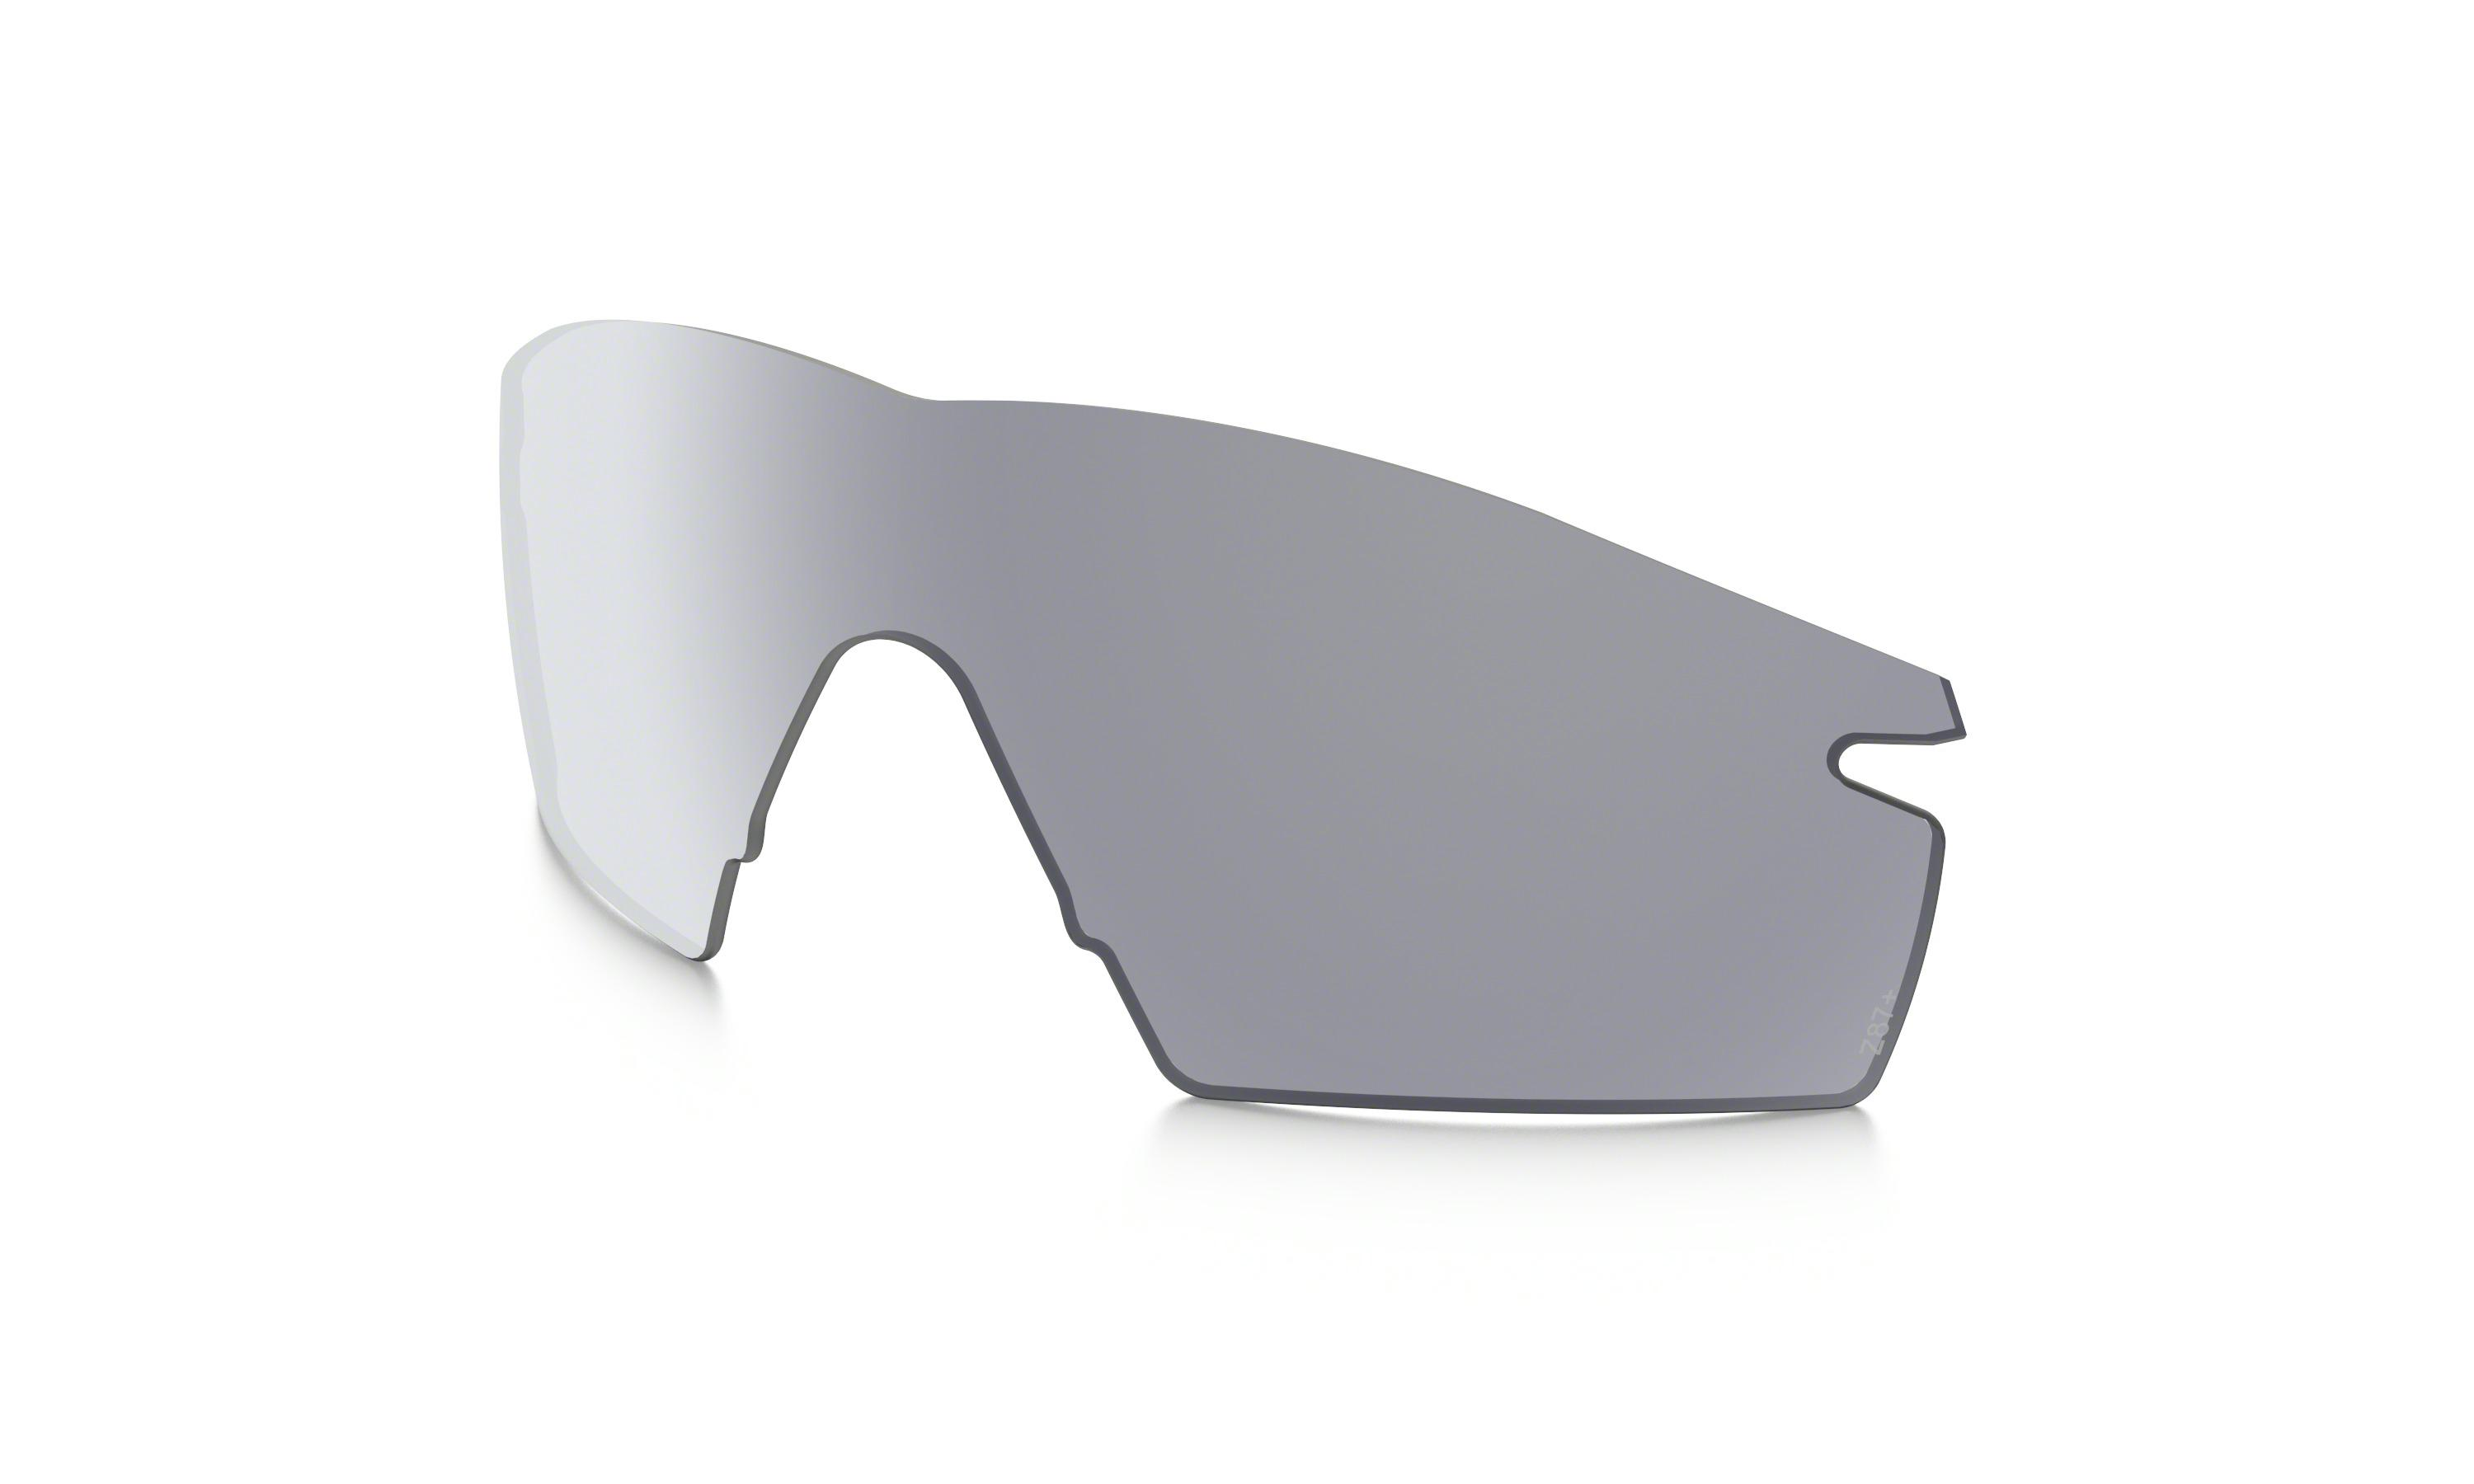 Lyst - Oakley Industrial M Frame® 2.0 Replacement Lenses in Gray for Men